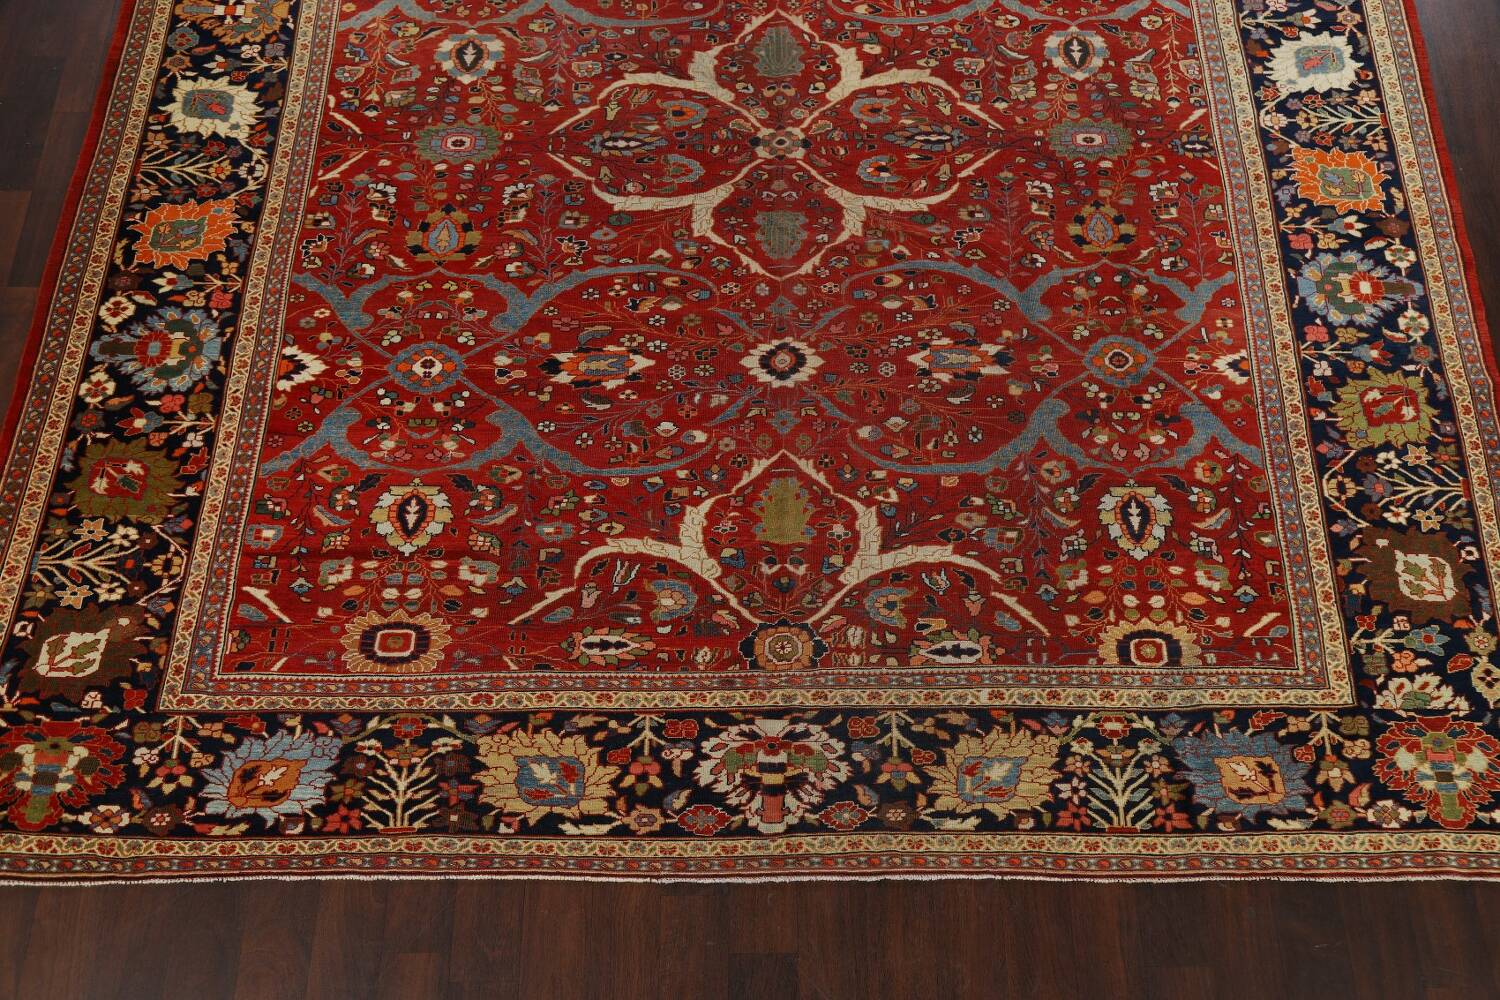 Pre-1900 Antique Sultanabad Vegetable Dye Persian Rug 11x14 image 5